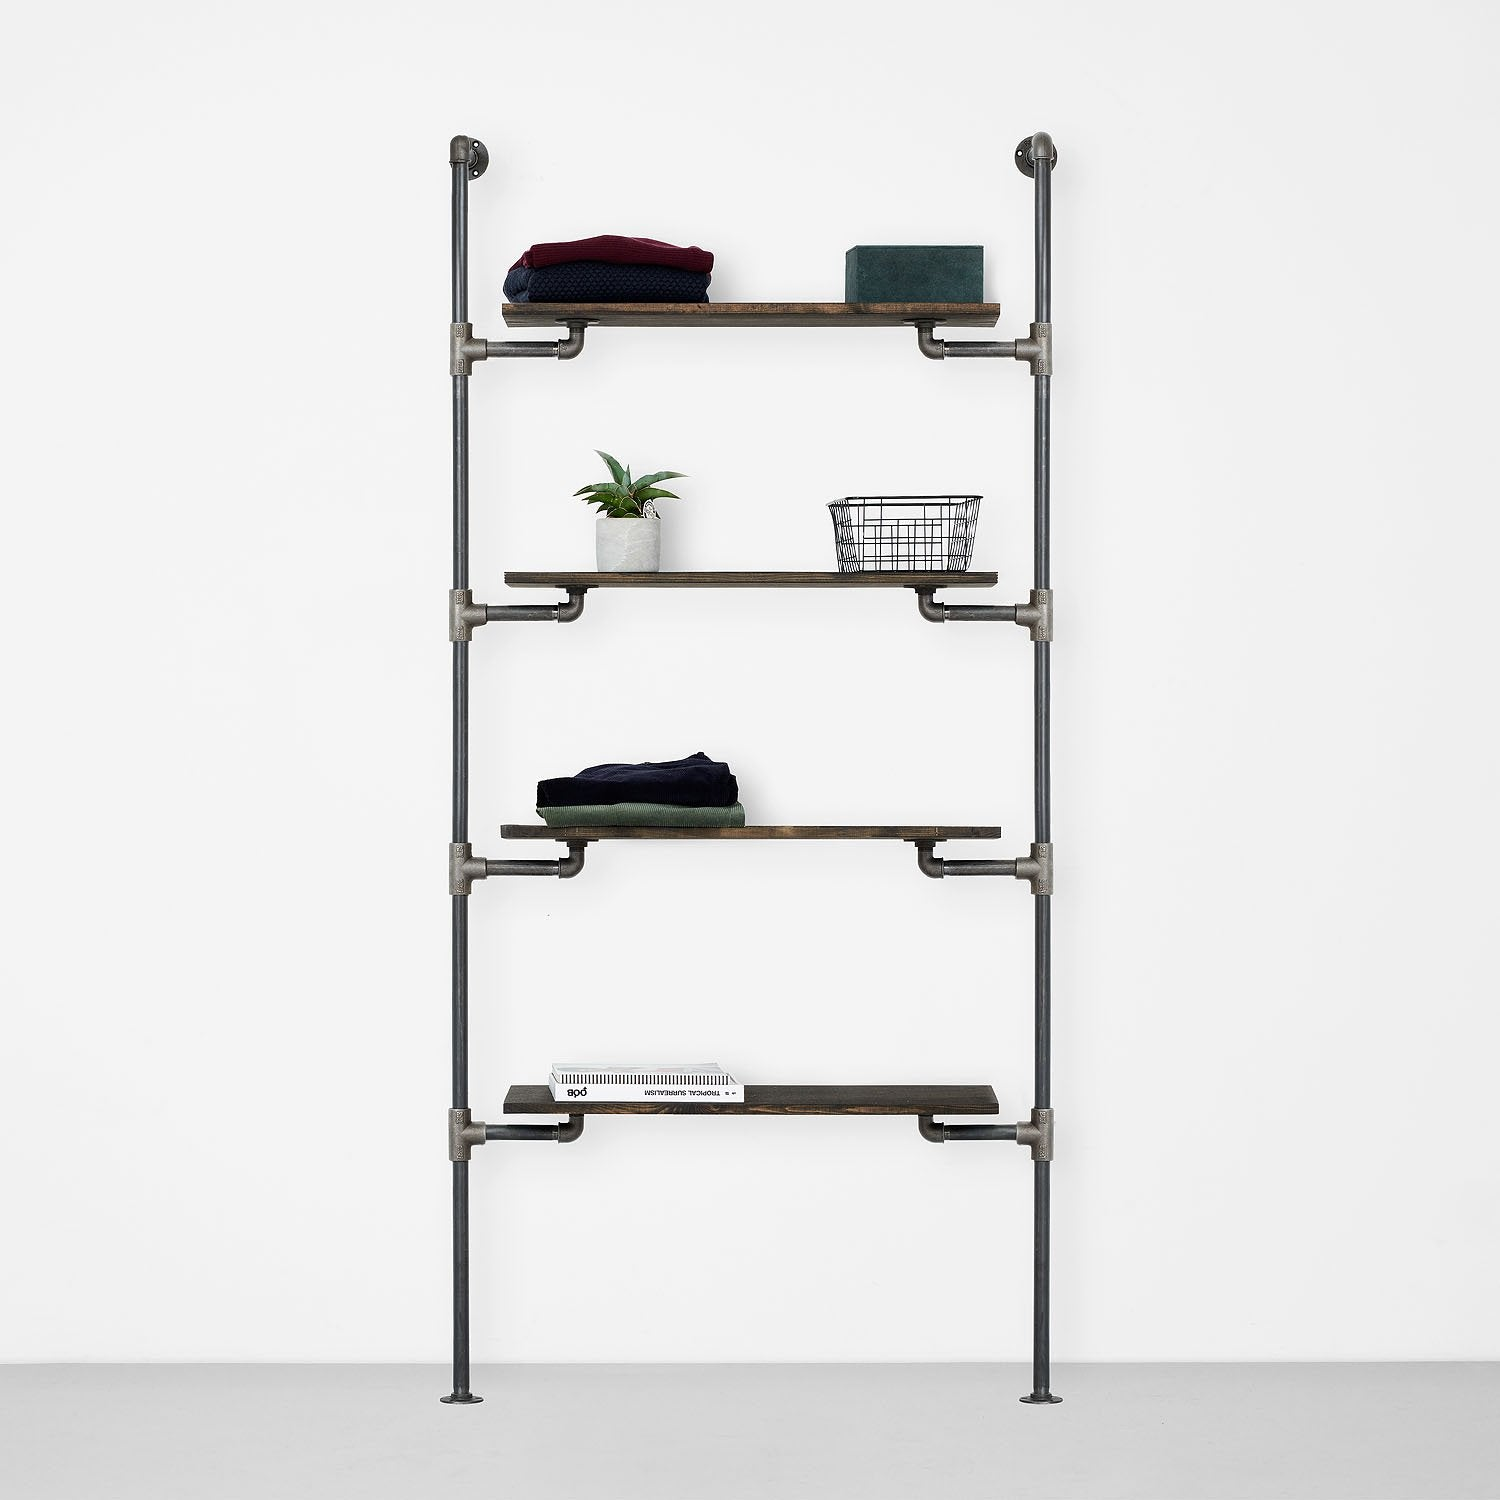 The Walk-In 1 row wardrobe system - 4 shelves